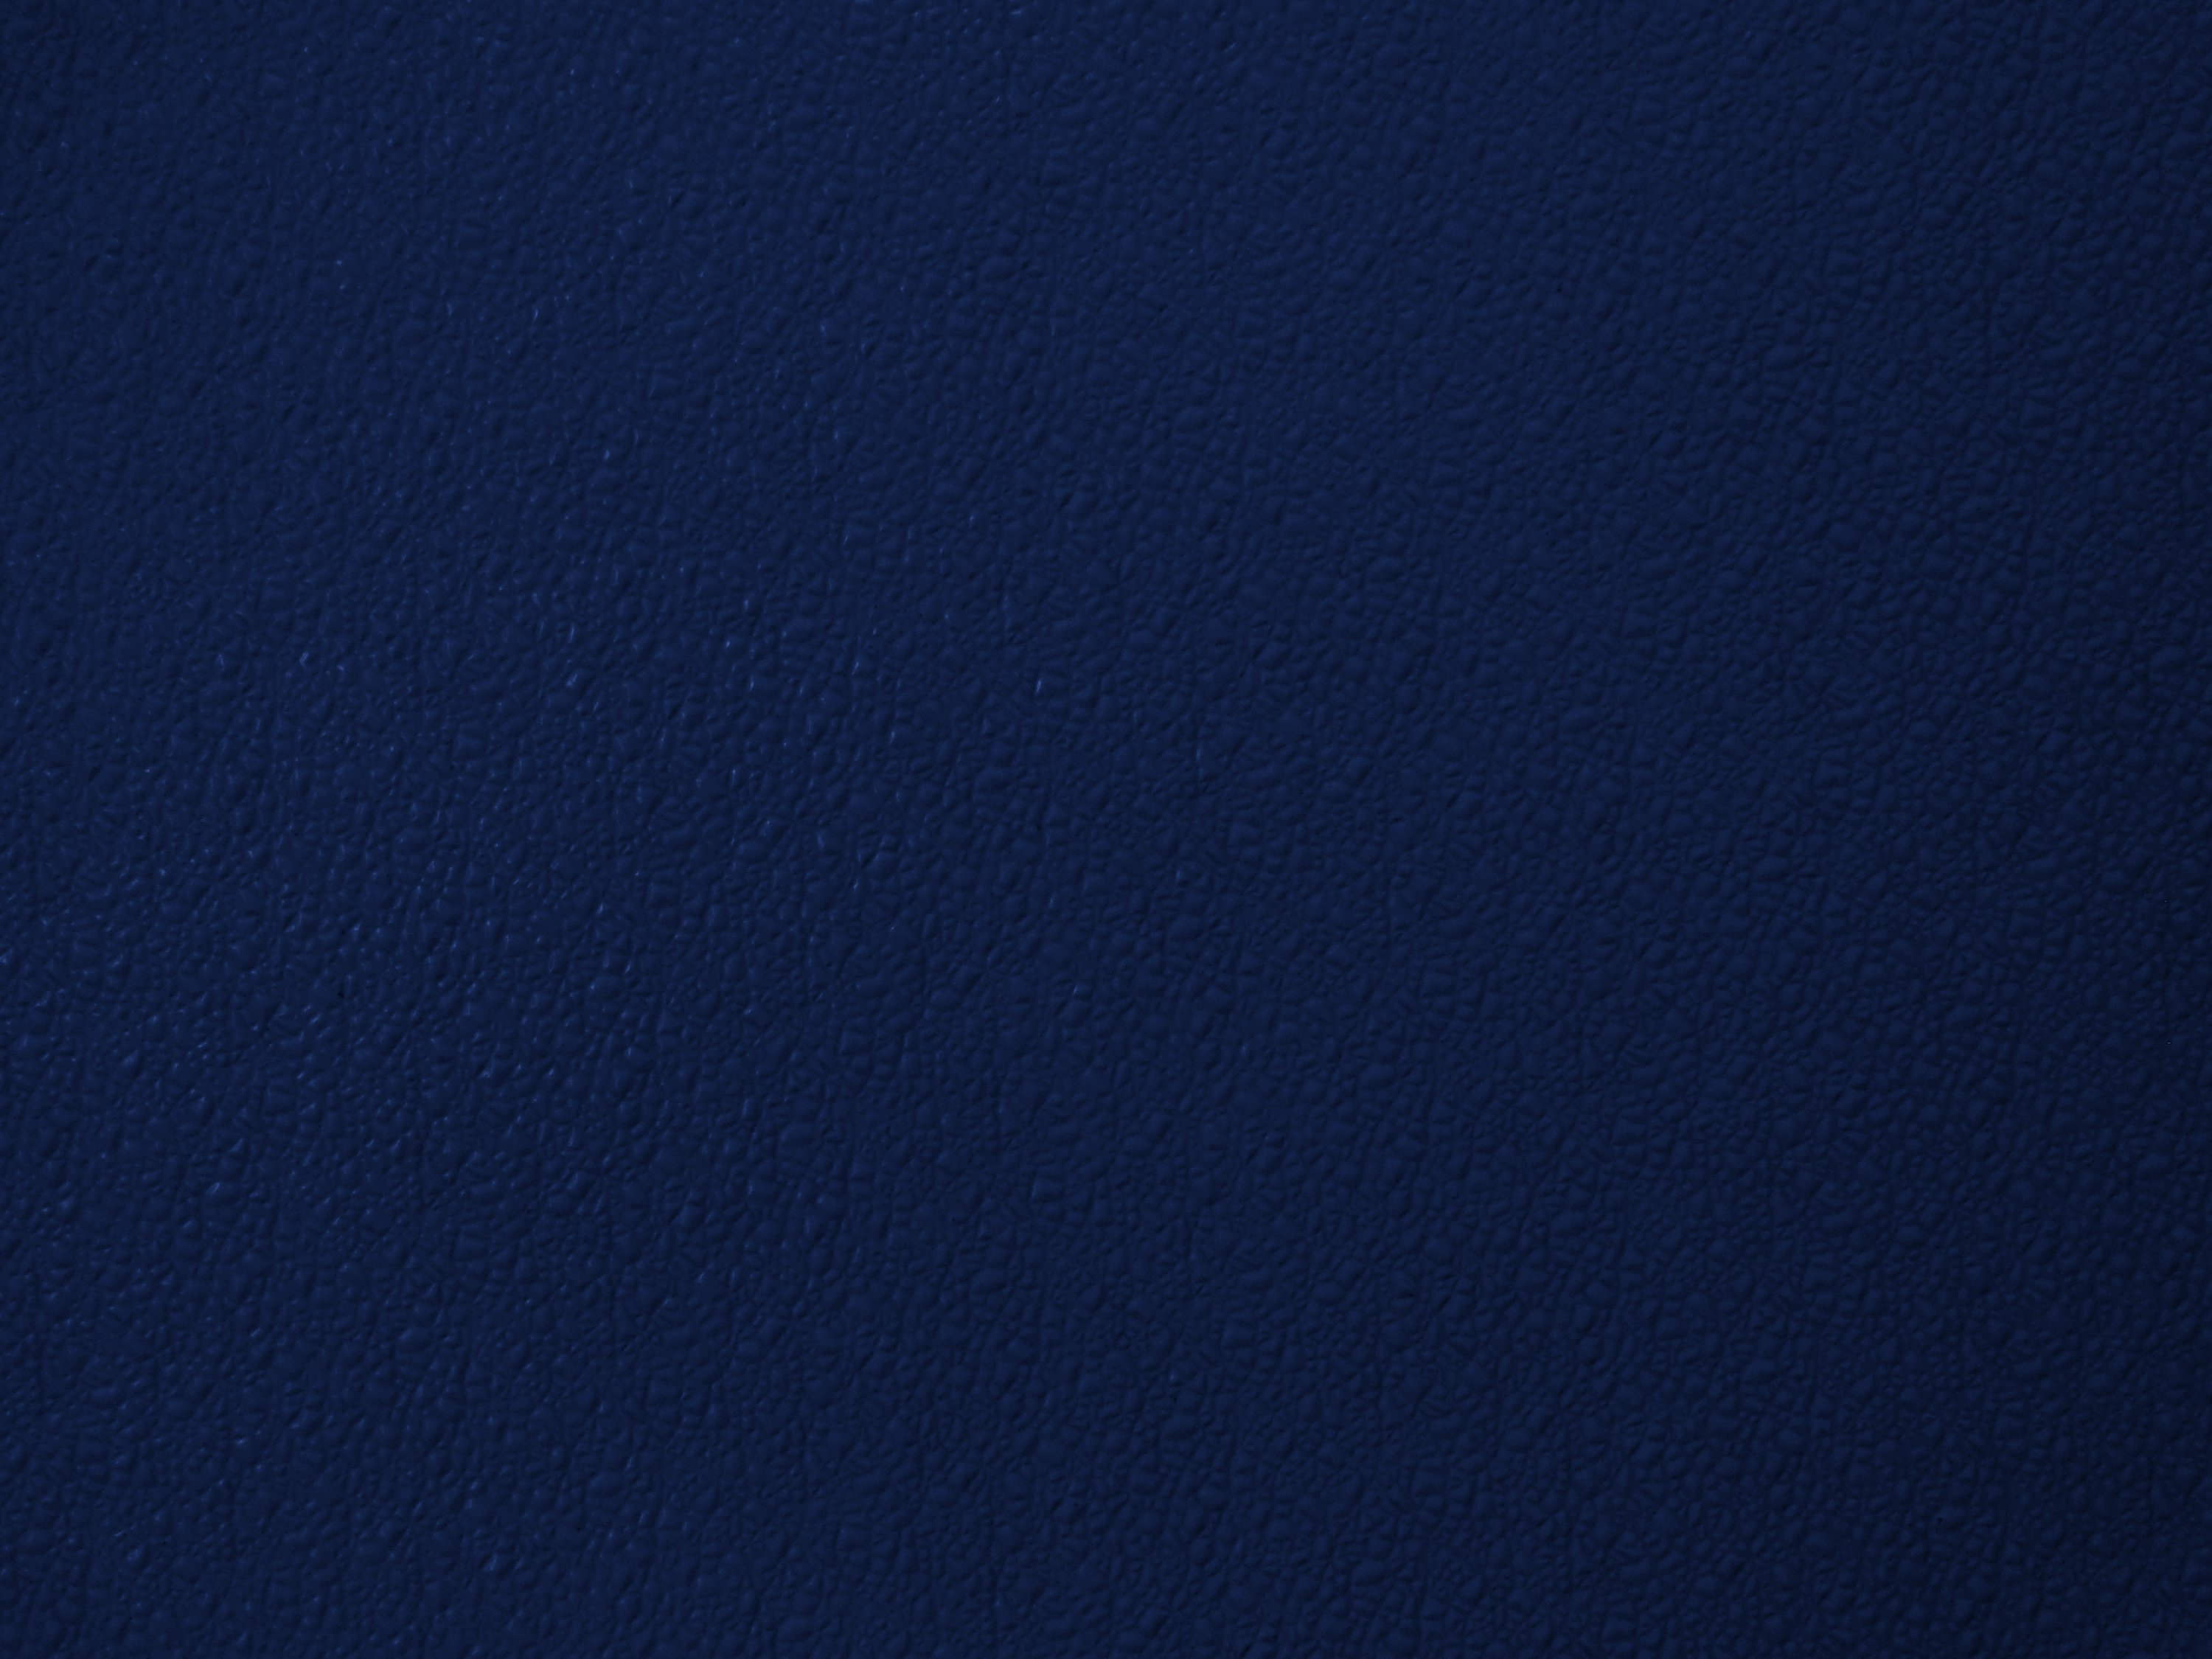 Dark Blue Background Texture Bumpy navy blue plastic 3000x2250